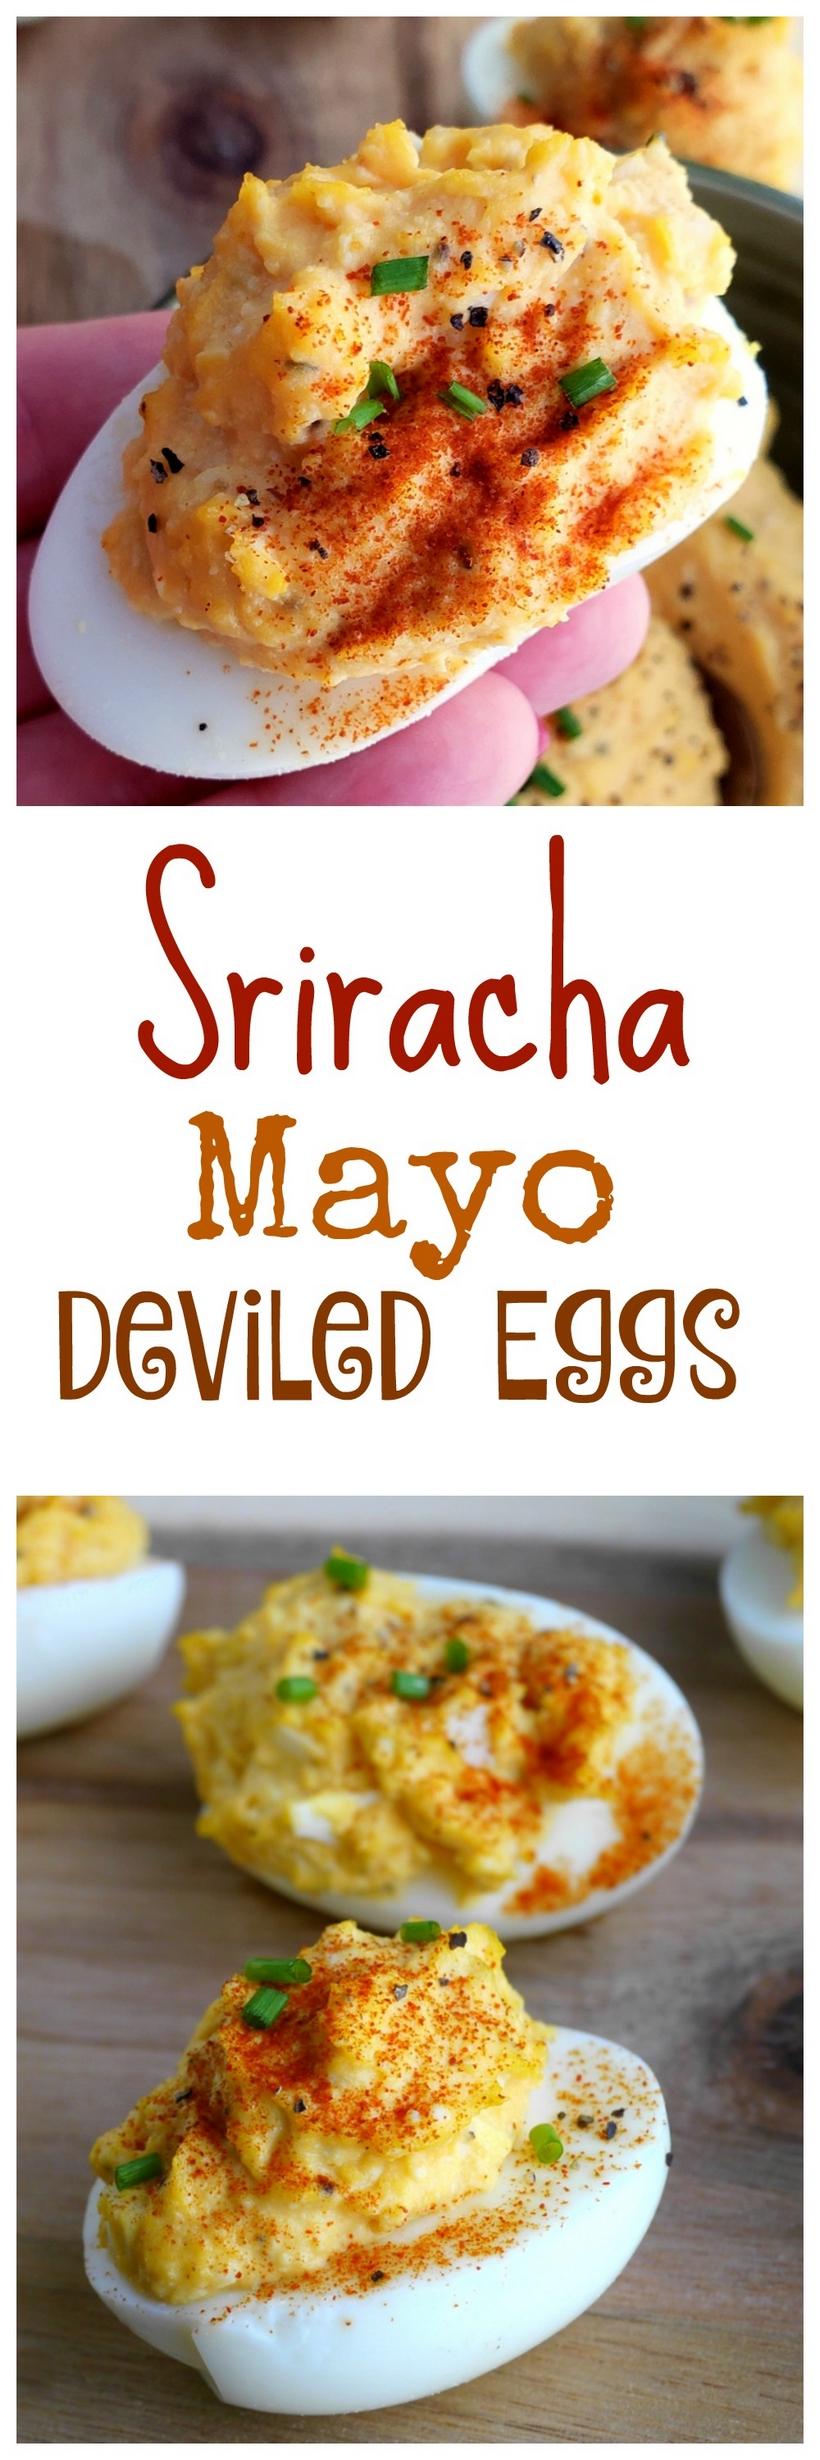 Add a little spice to the appetizer table with these Sriracha Mayo Deviled Eggs. This is a zesty, creamy and splurge-worthy treat you'll want to serve at every event! #noblepig #sriracha #eggs #devliedeggs